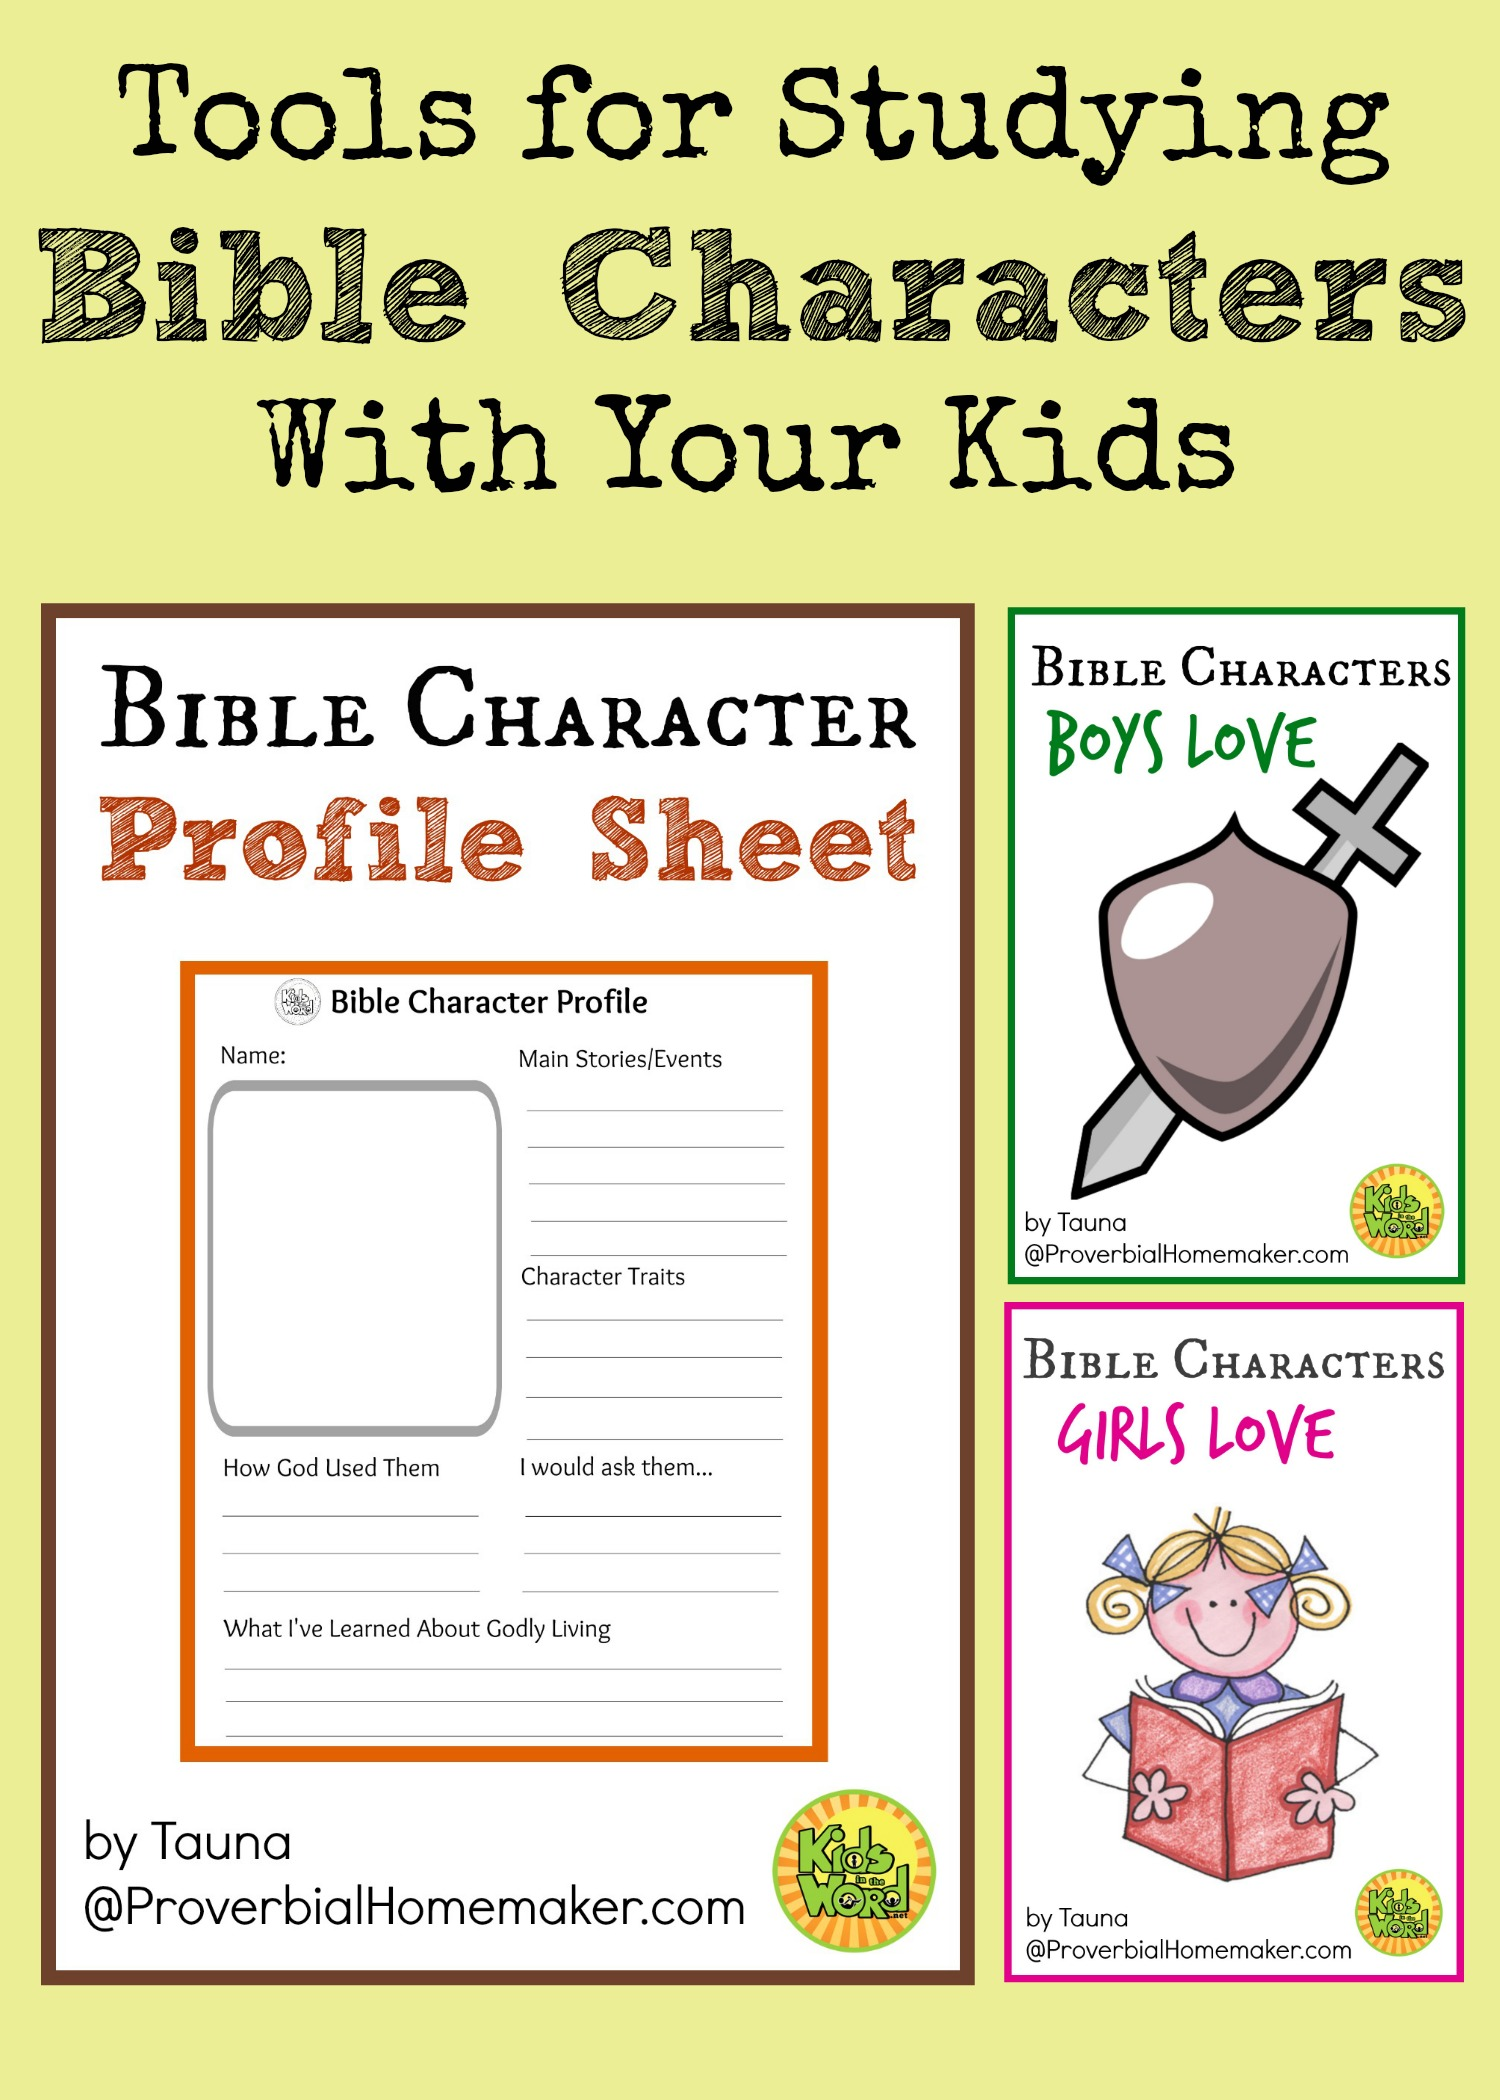 Tools For Studying Bible Characters With Your Kids